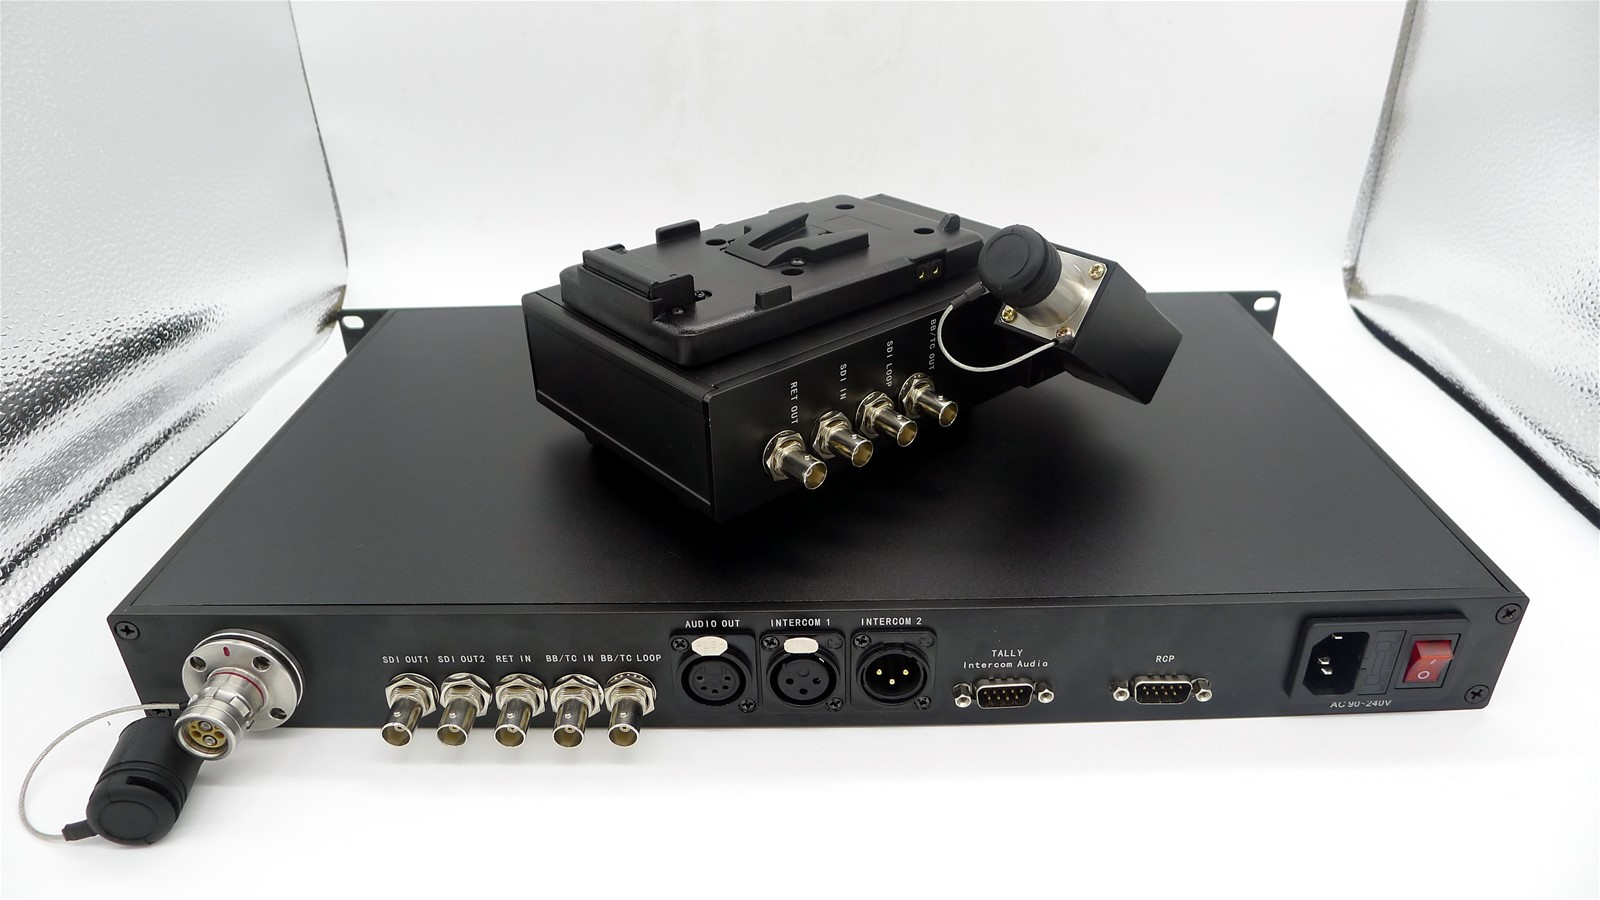 SDI Tally Intercom Remote Return to fiber delivery from EFP camera to OB van